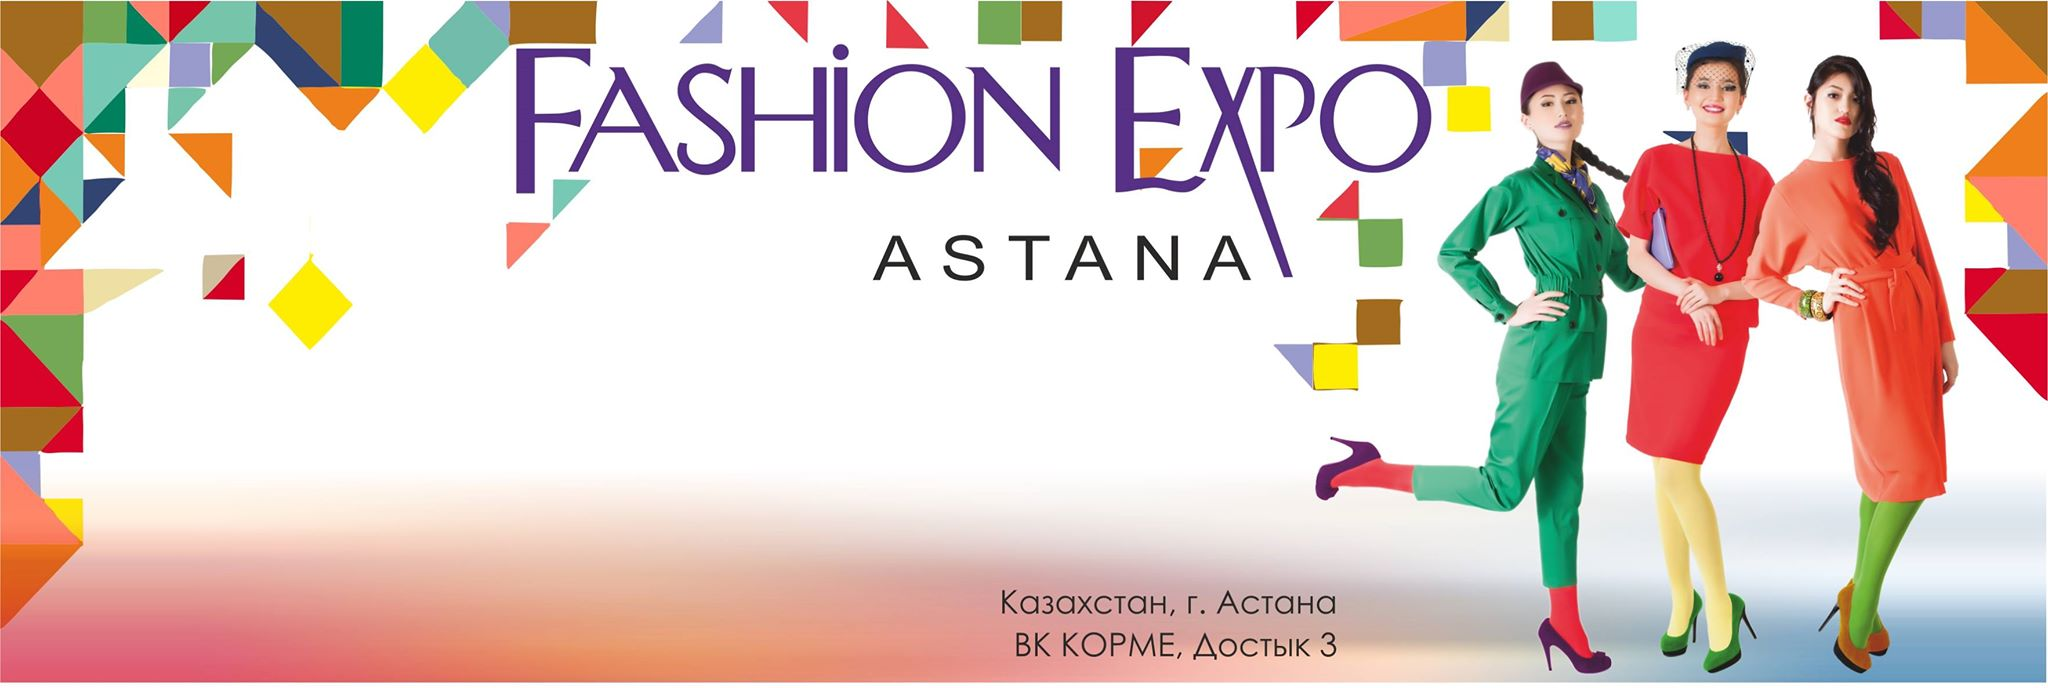 Fashion career expo 2018 Why Exhibit? Fashion Career Expo